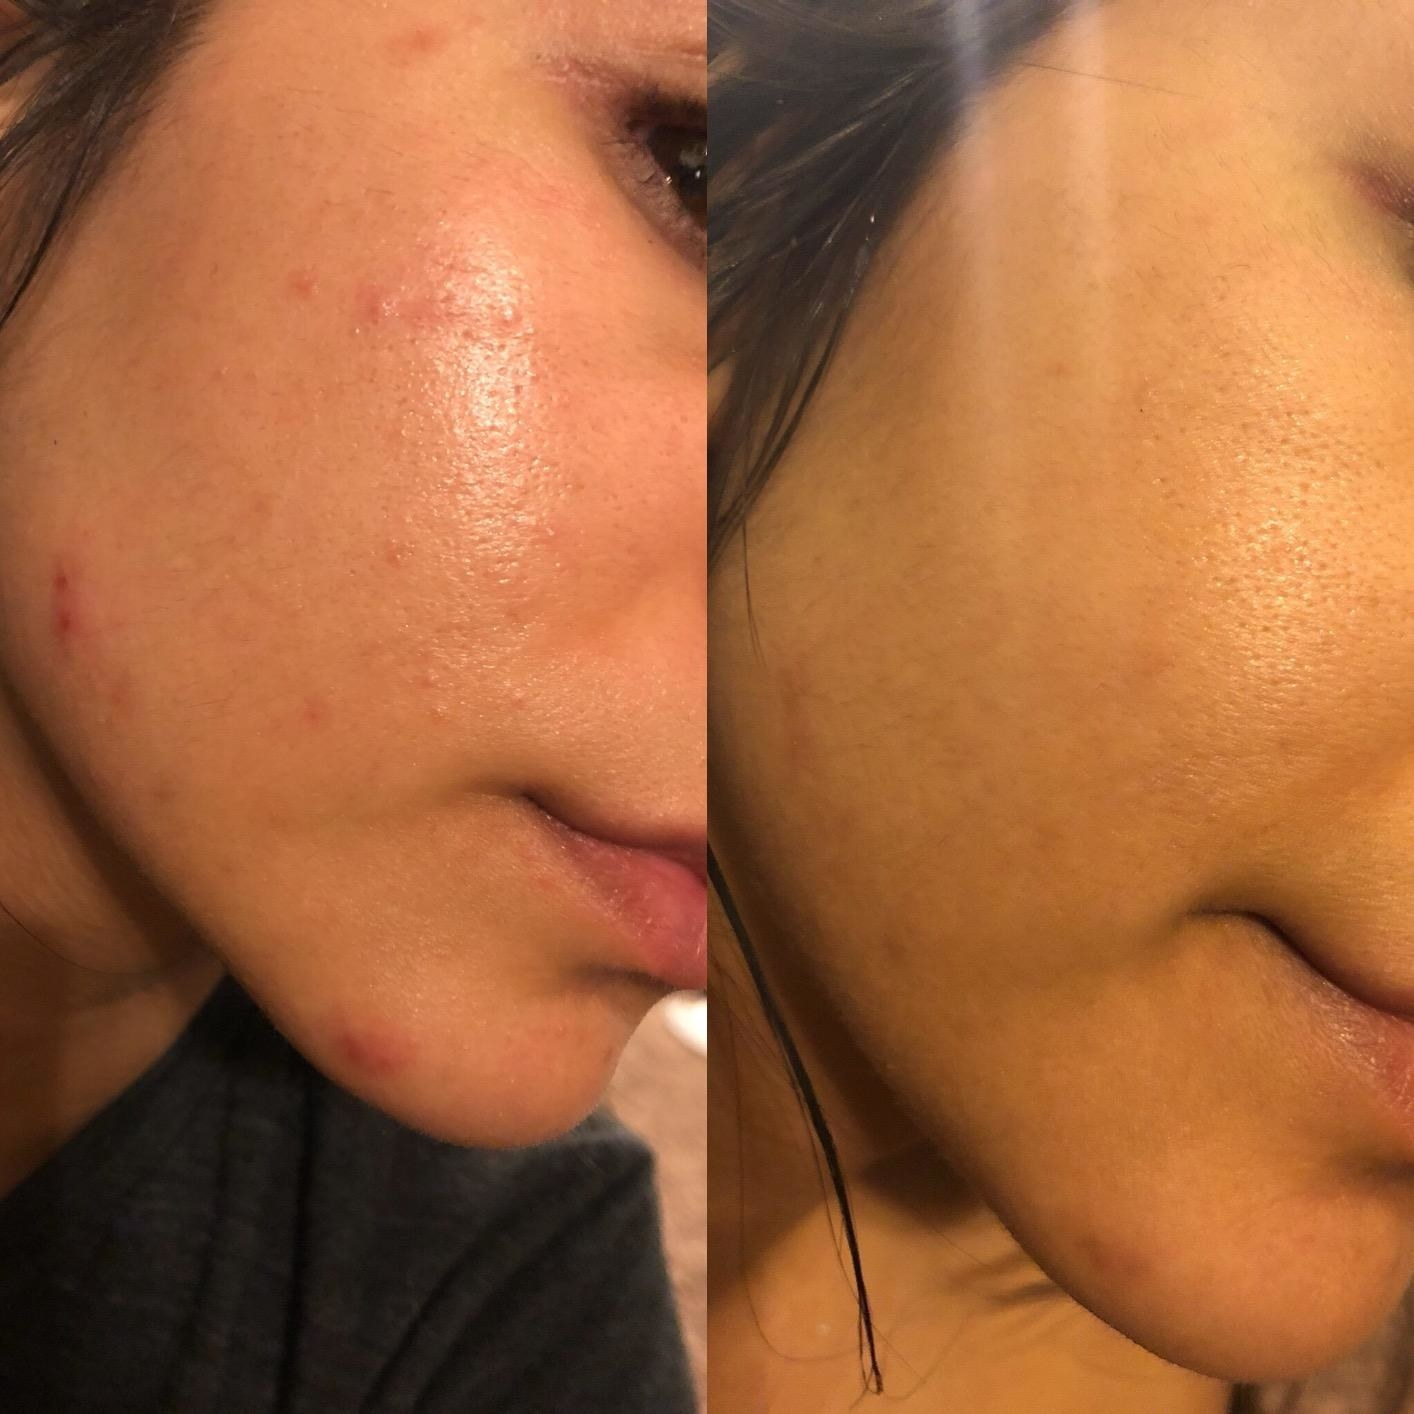 Reviewer before and after showing the scrub helped clear up breakouts on their cheek